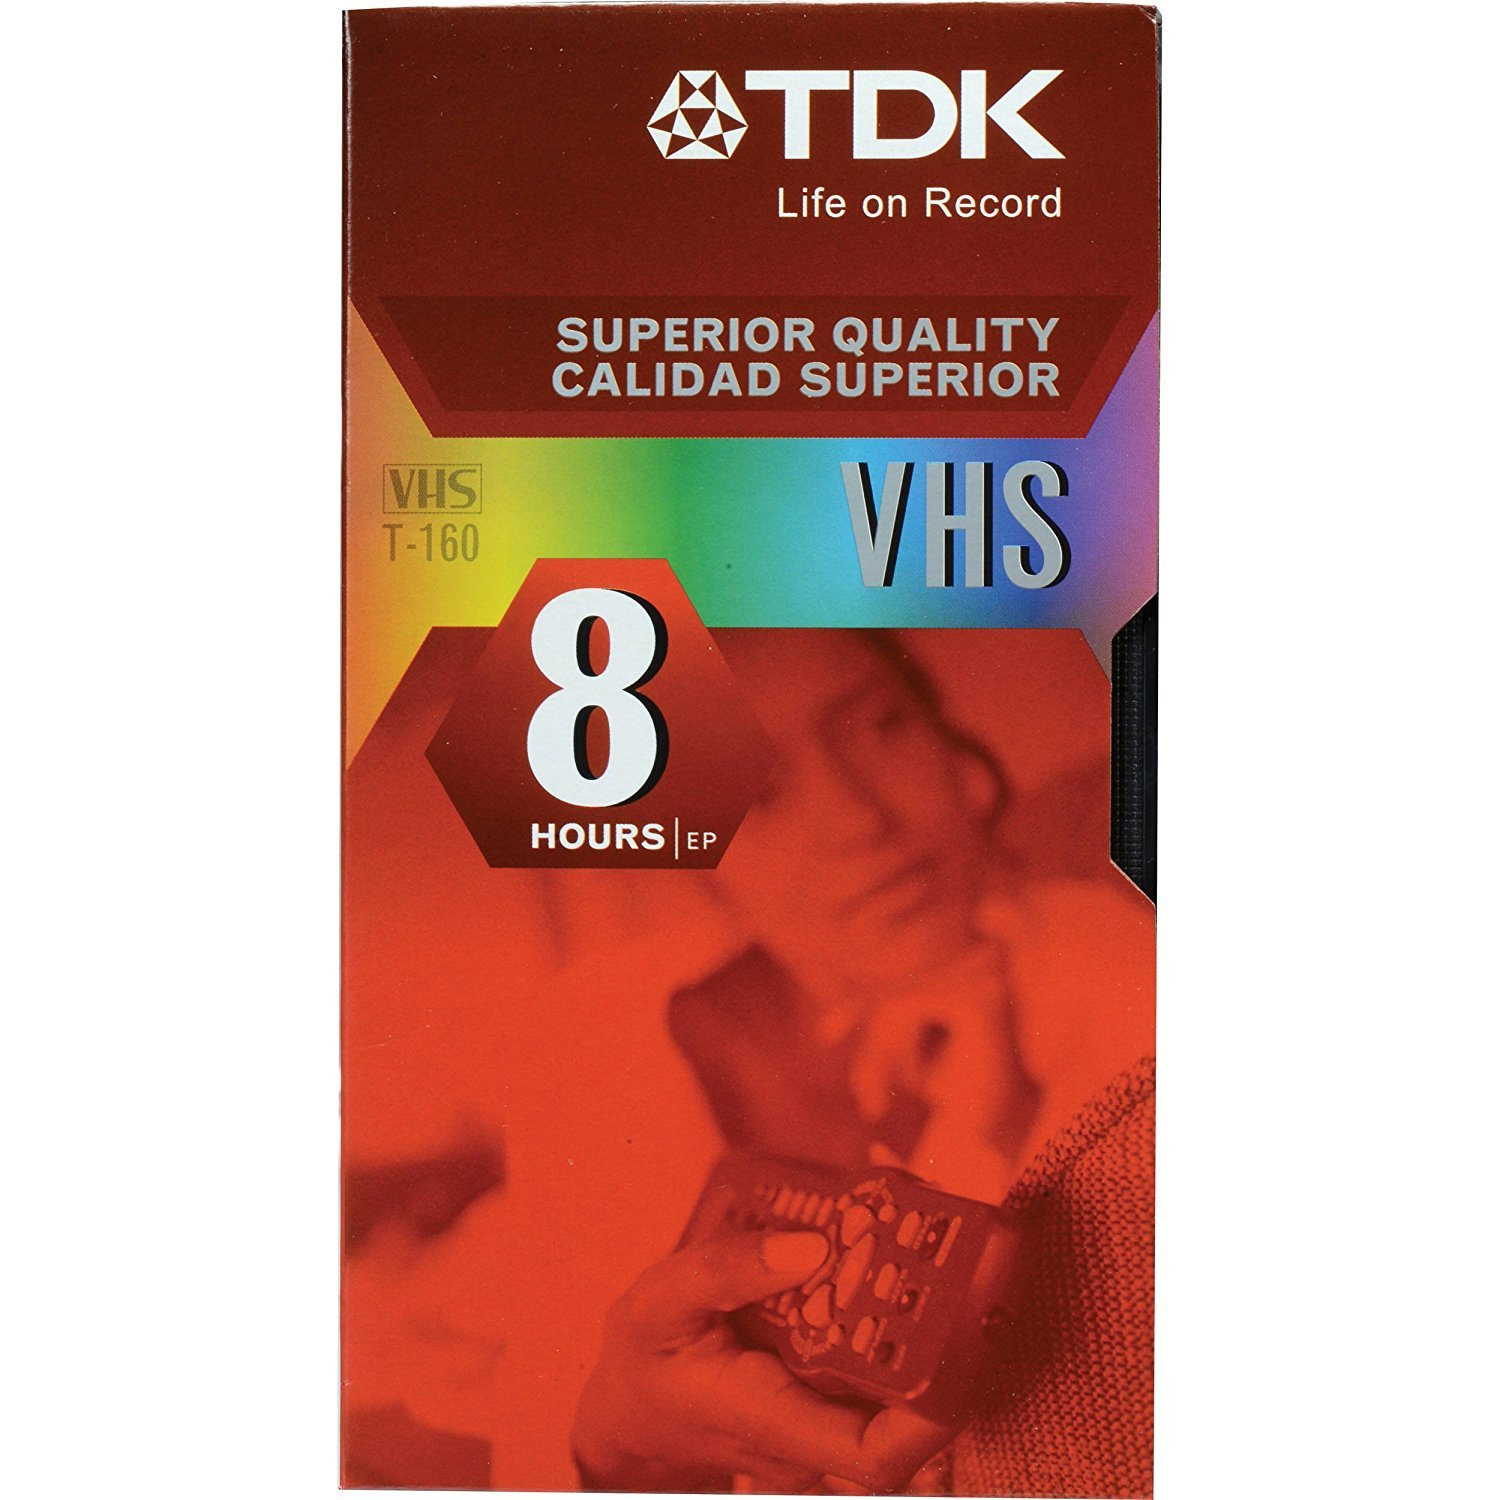 TDK T-160 VHS Video Tapes - 10 Pack by TDK